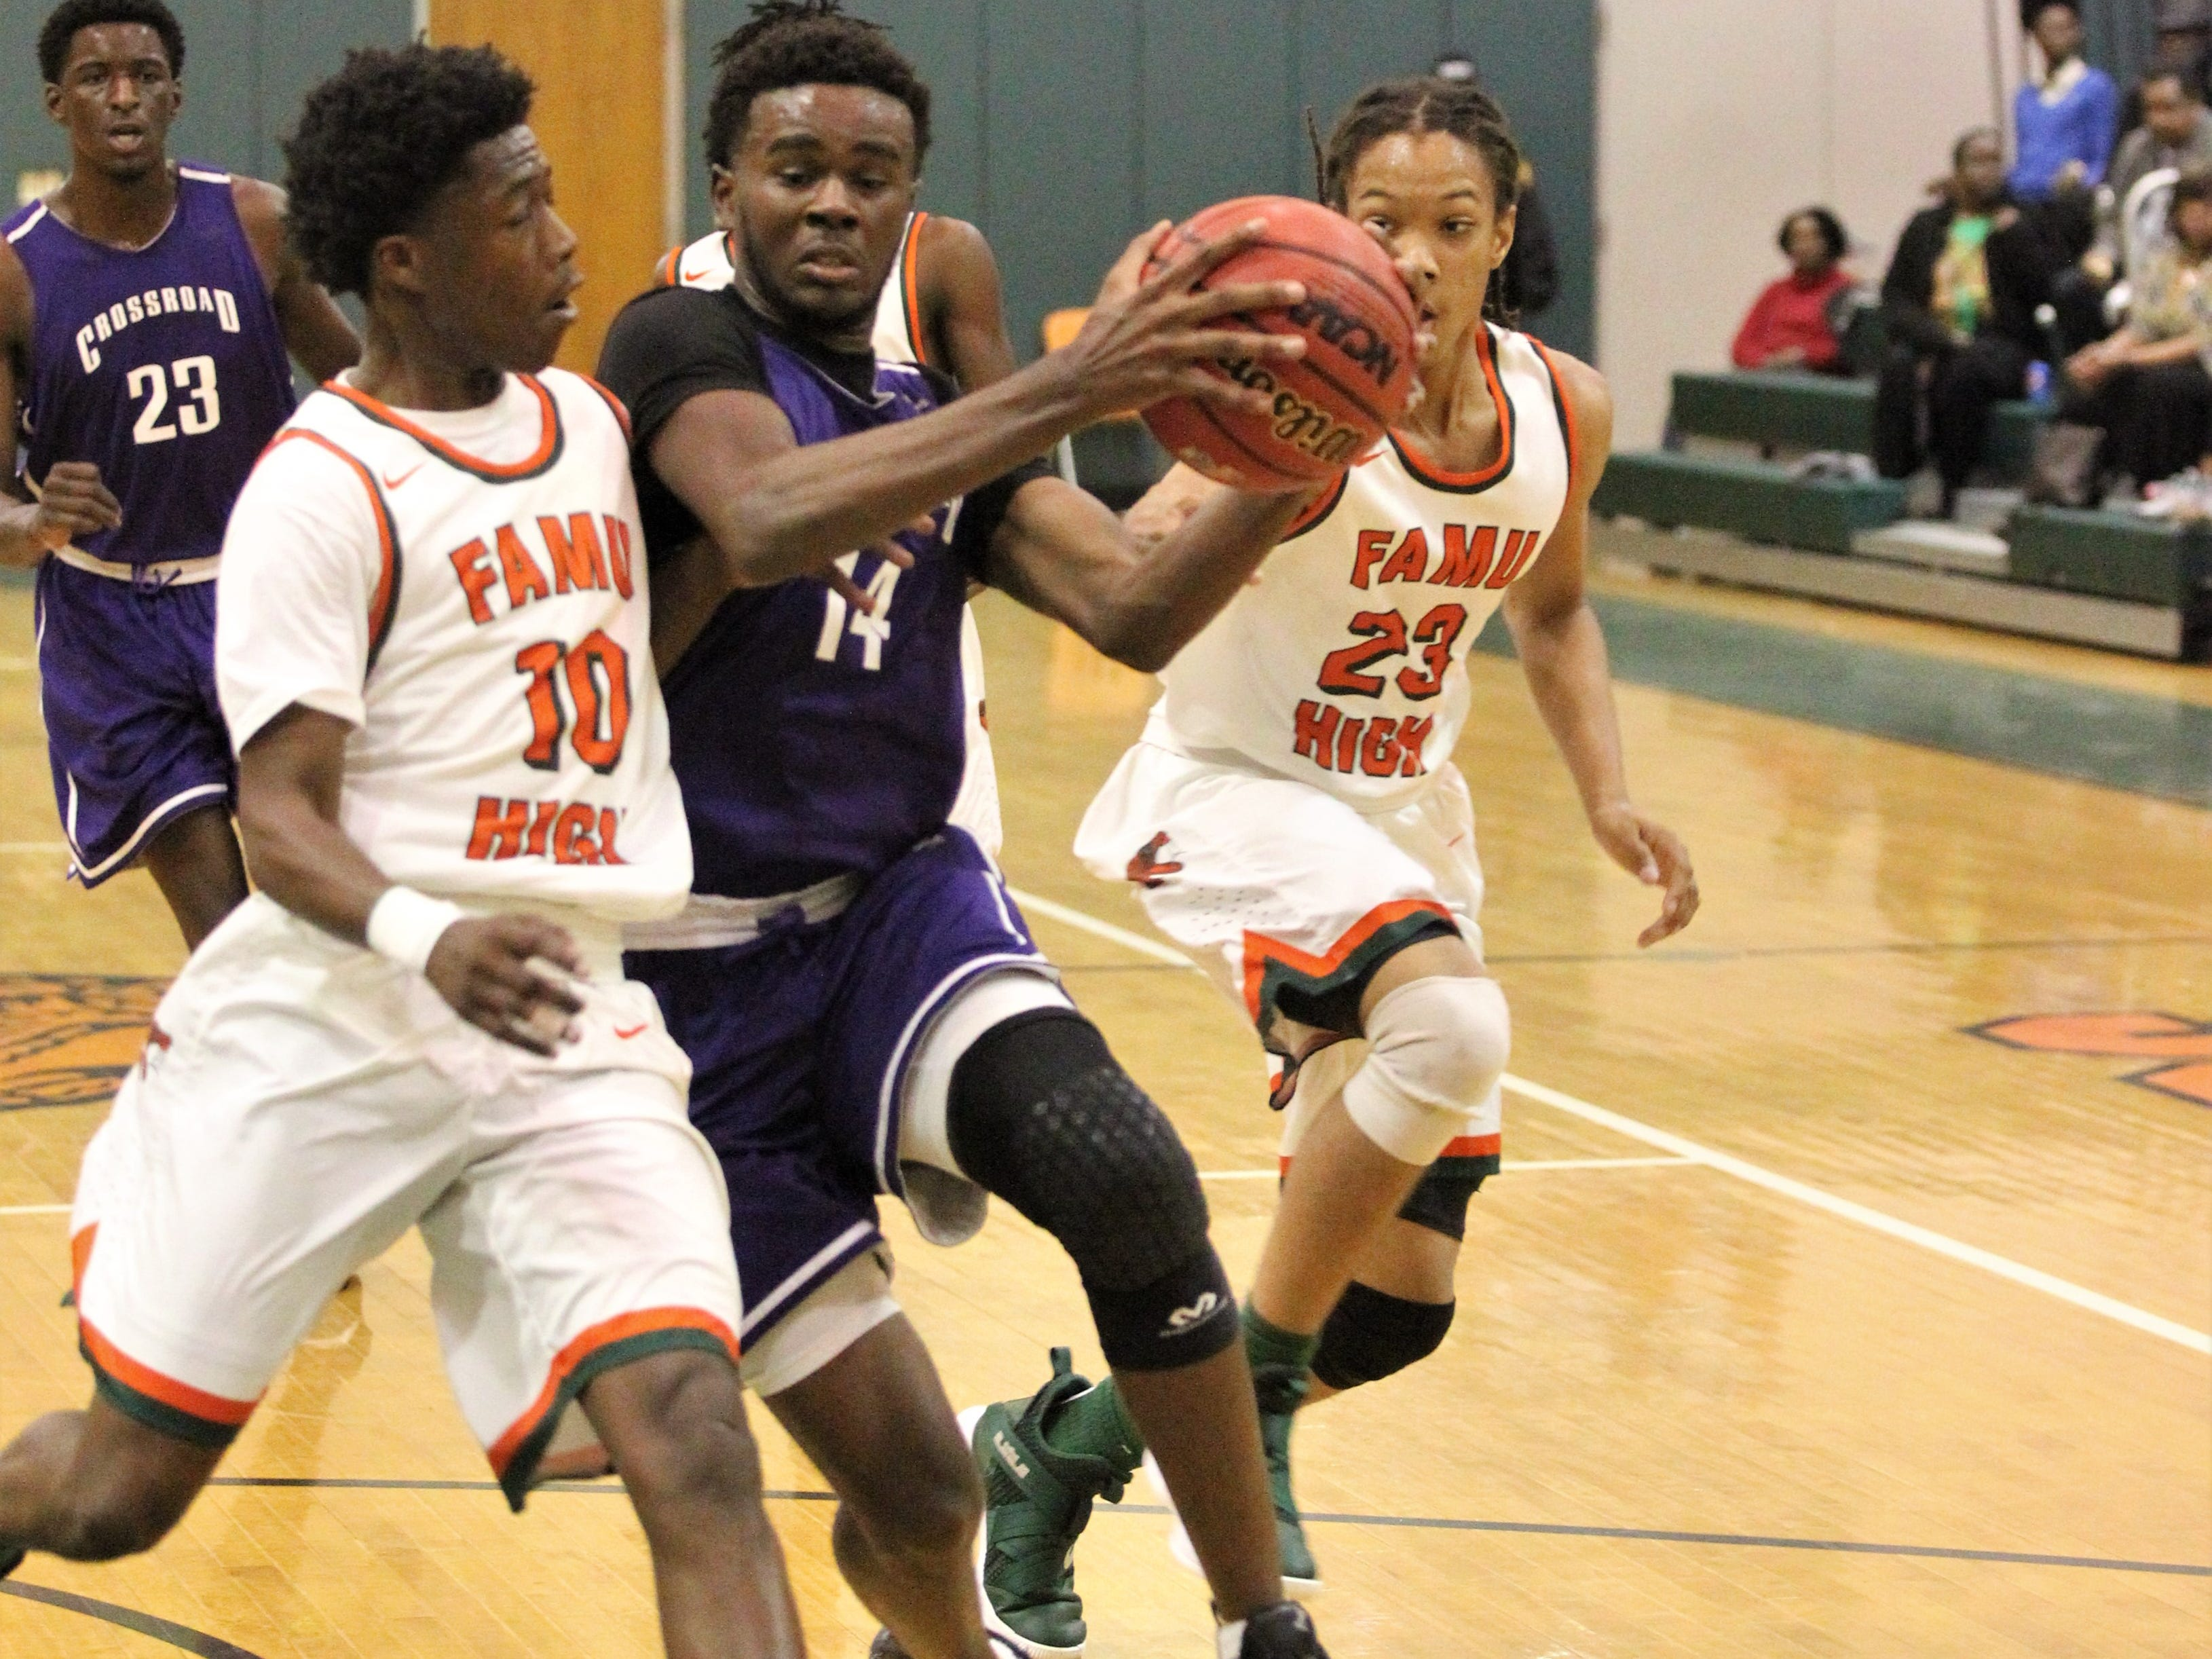 Jalan Black drives to the basket as Crossroad Academy's boys basketball team plays at FAMU DRS on Jan. 7, 2019.